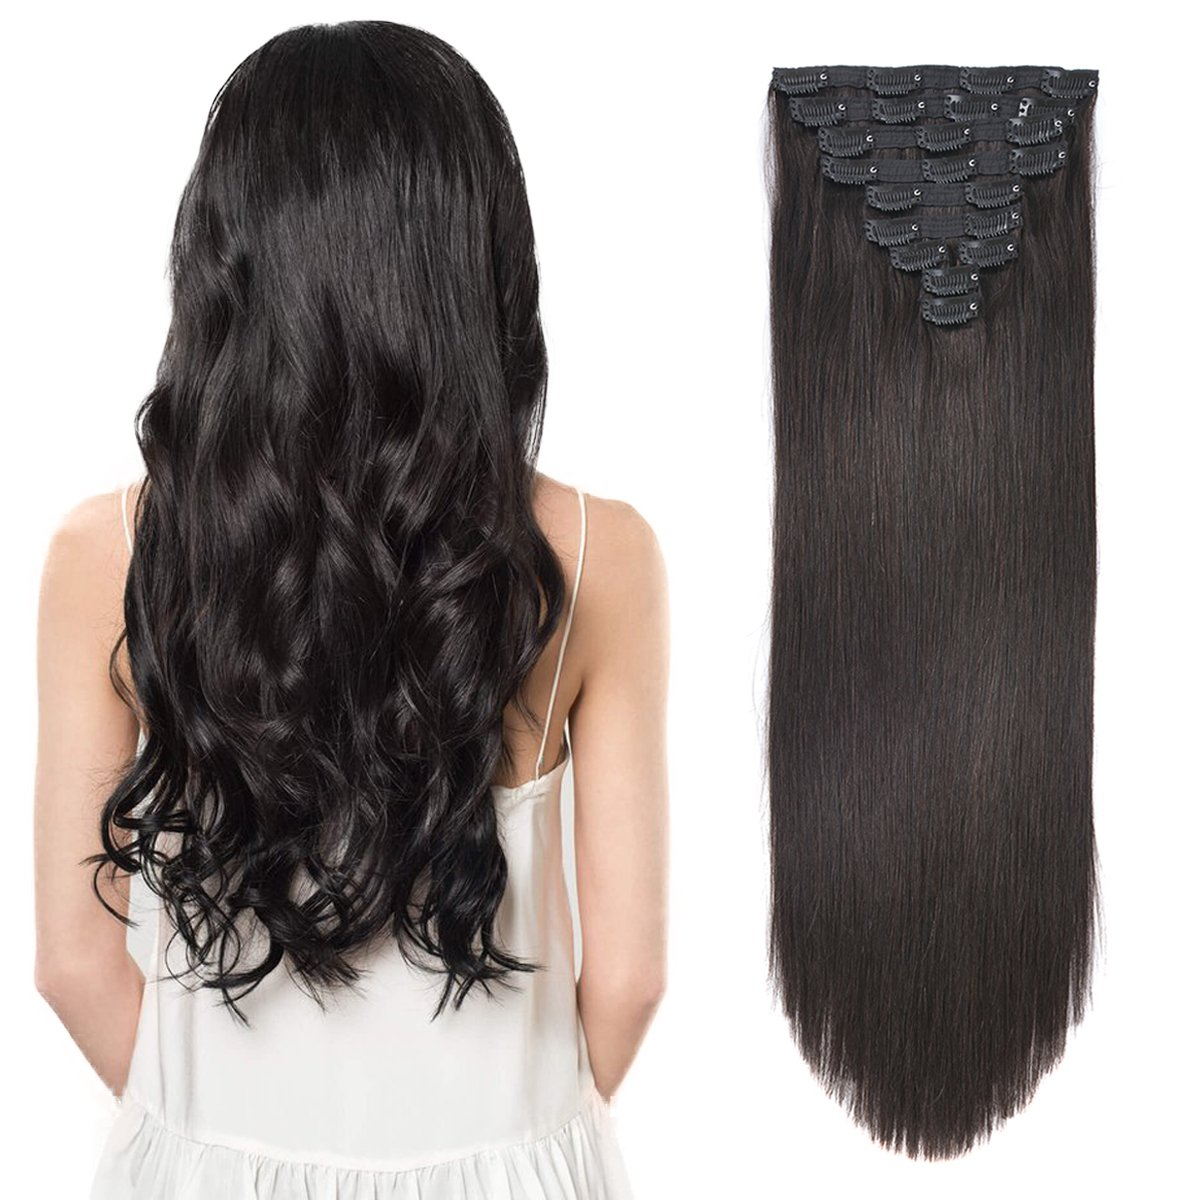 20'' Clip in Human Hair Extensions Natural Hair Clip in Extensions for Thick Hair Full Head Off Black #1B 10pieces 220grams/7.7oz by BEAUTY PLUS (Image #3)